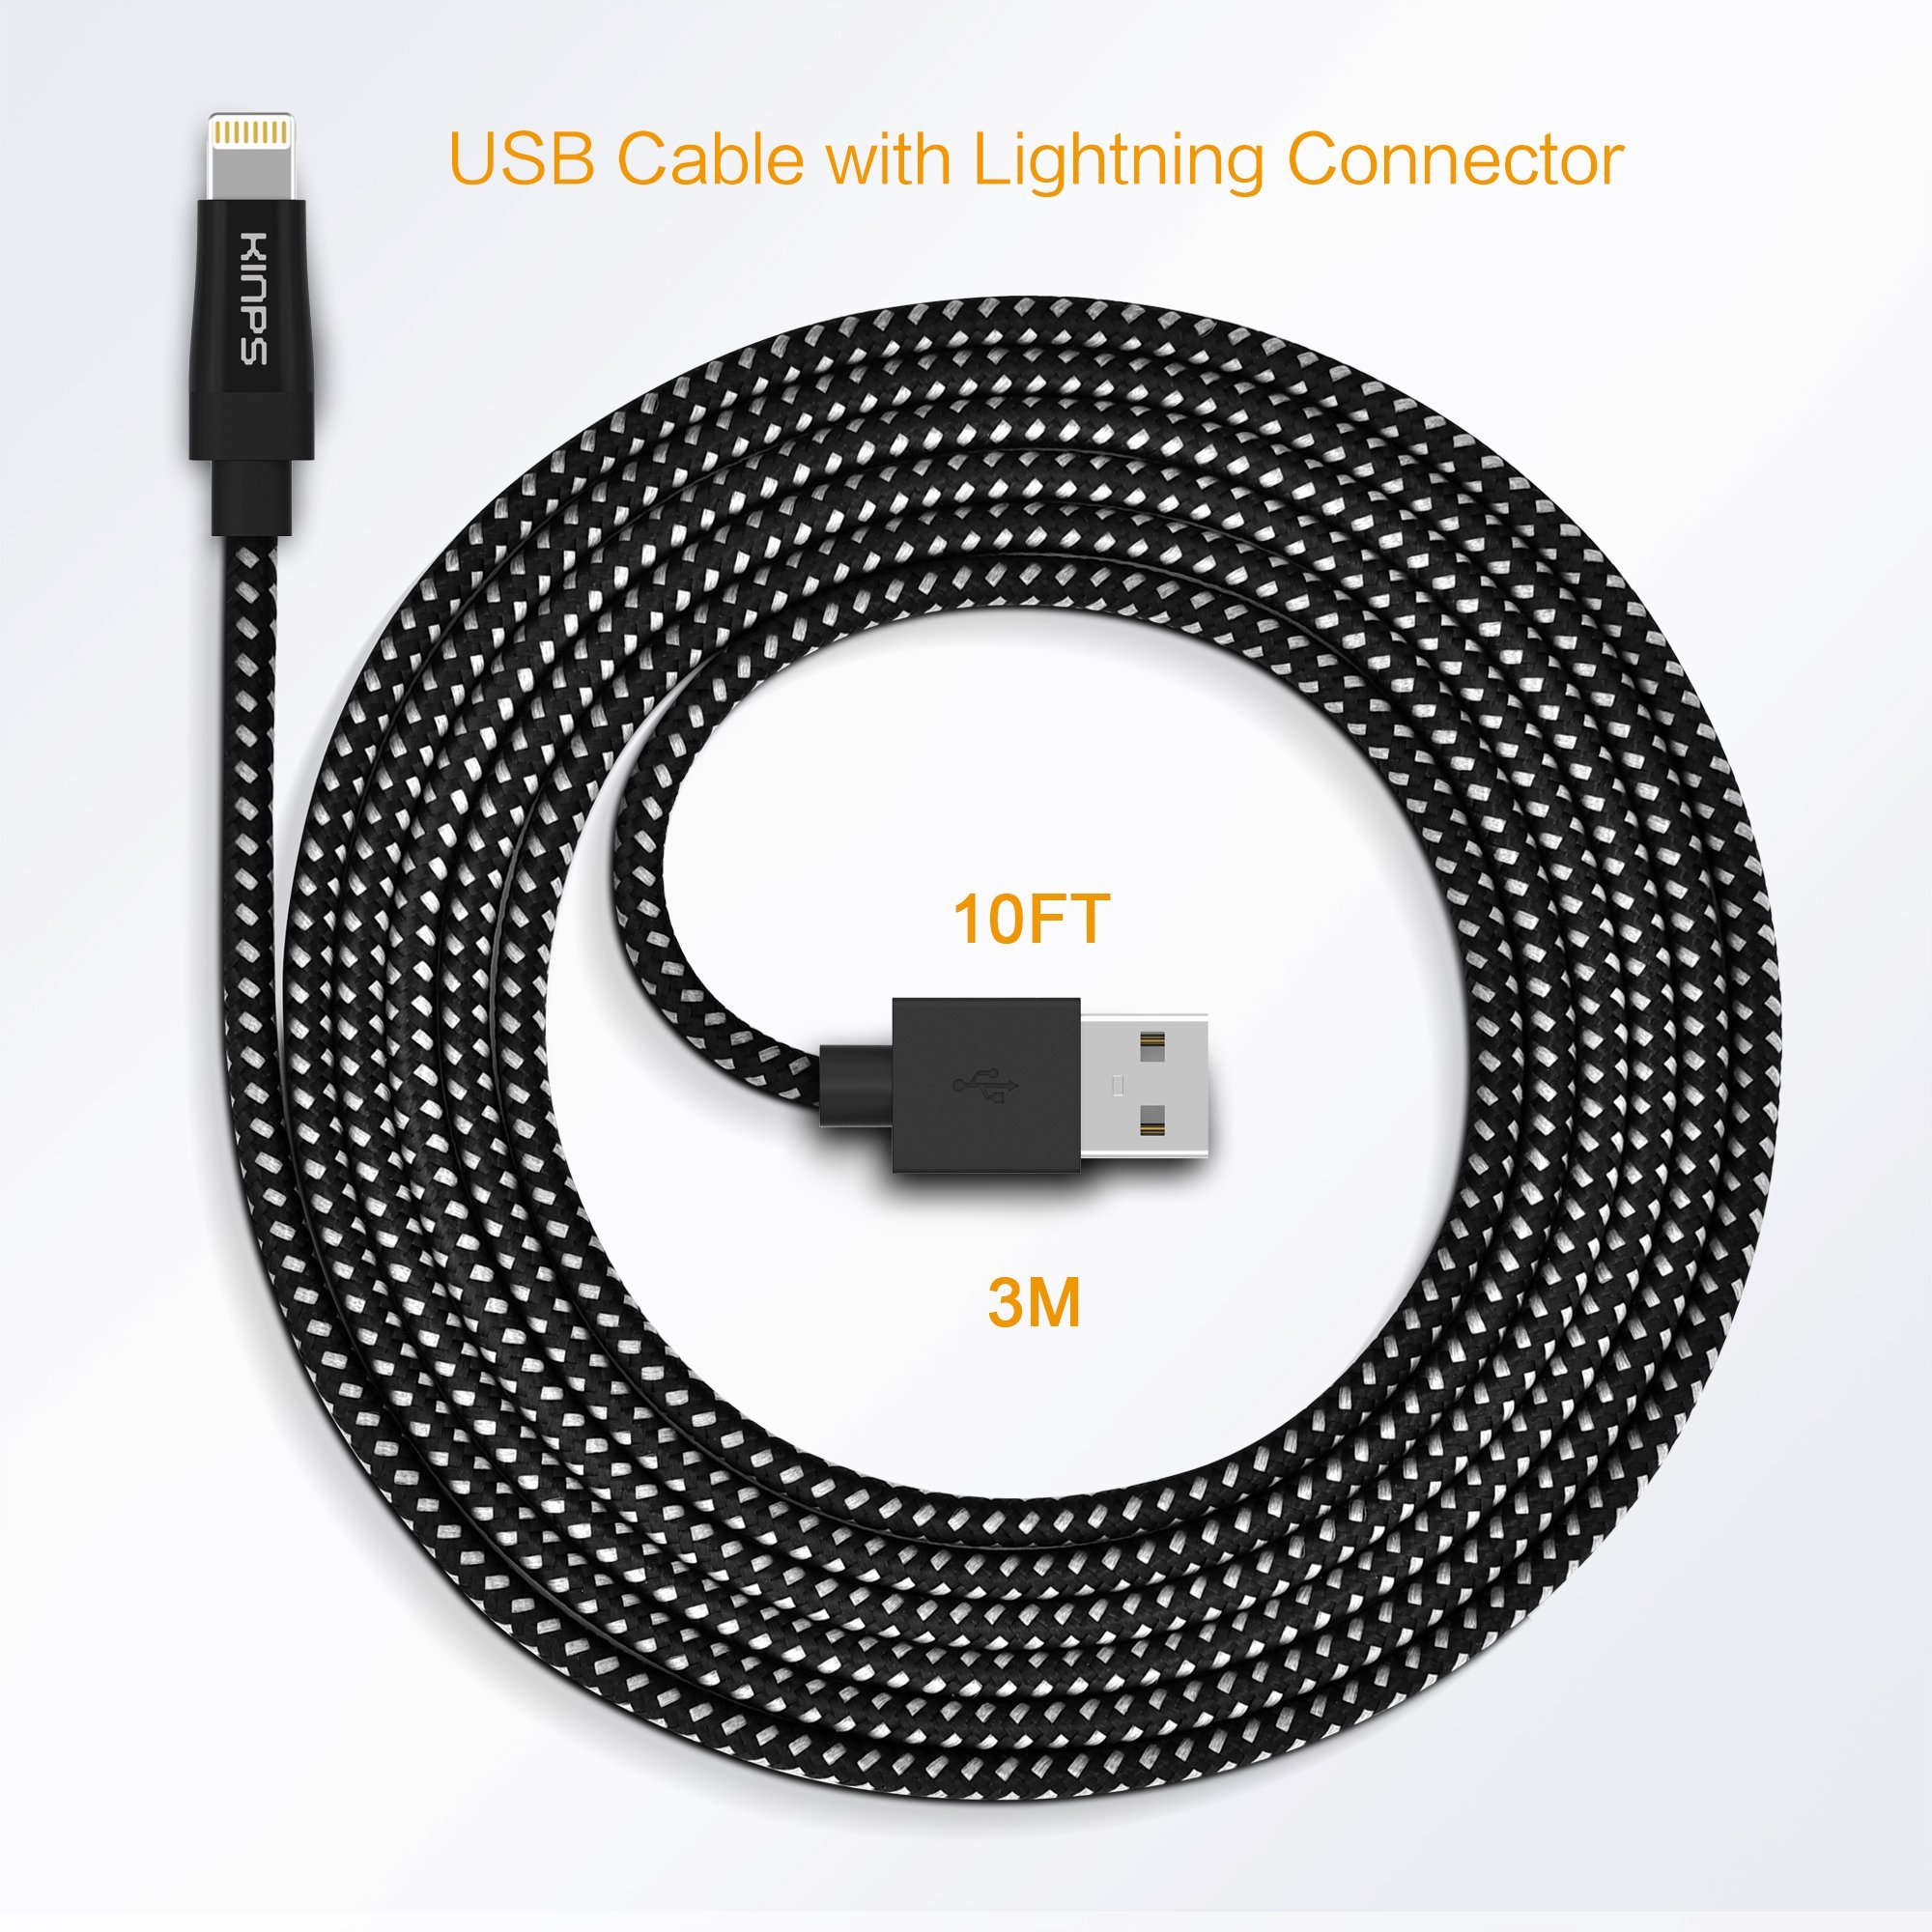 Kinps Apple MFi Certified Lightning to USB Cable 10ft/3m iPhone Charger Cord Super Long for iPhone X / 8 / 8 Plus / 7 / 7 Plus / 6S / 6S Plus / 6 / 6 Plus / SE, iPad Pro / Air / Mini (Nylon-Black) by Kinps (Image #8)